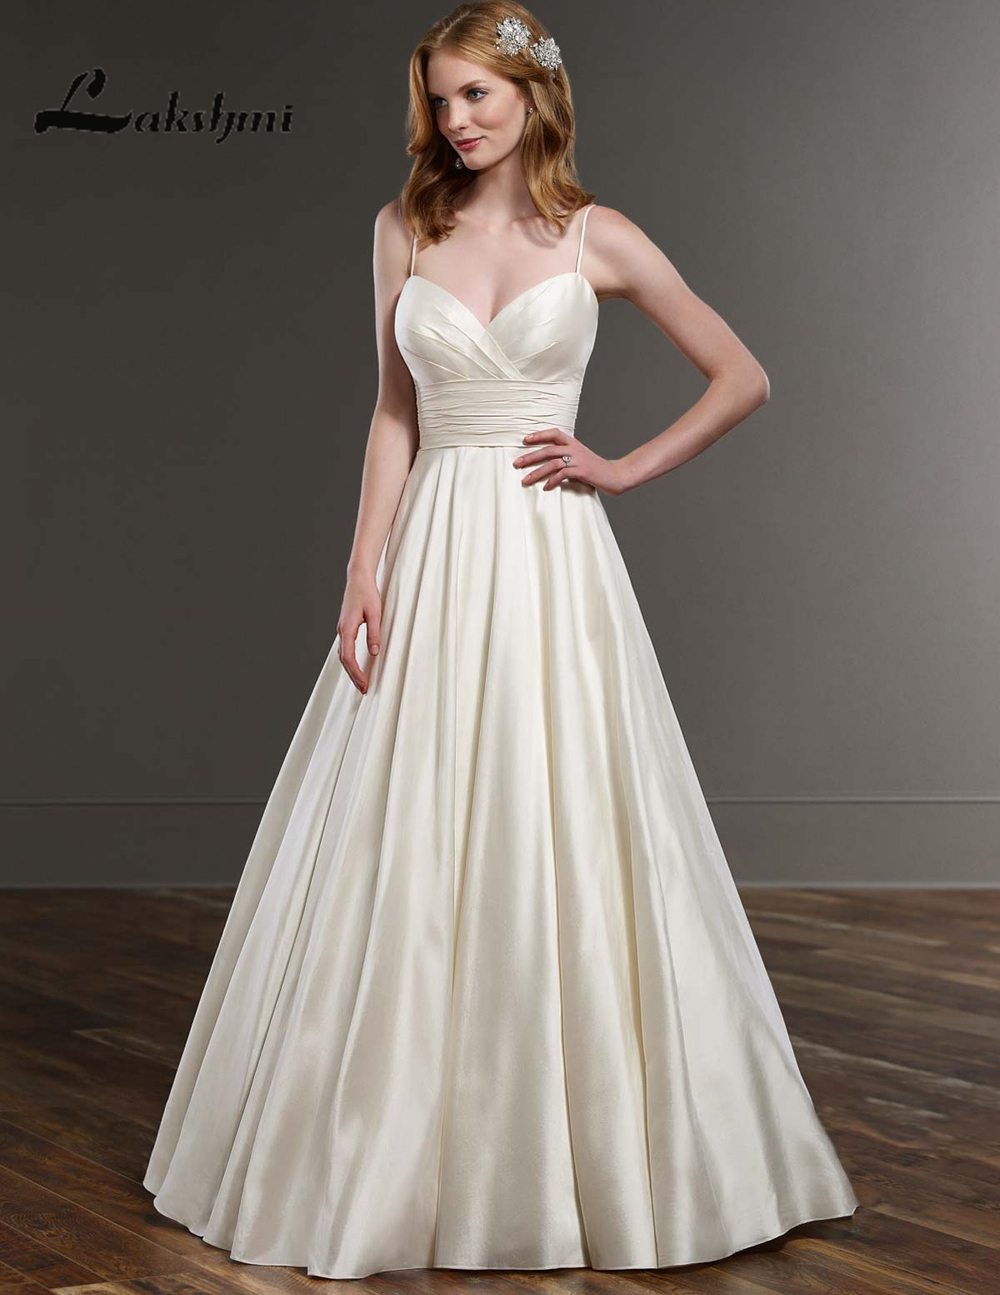 wedding dresses with pockets and straps wedding dress with pockets Wedding Dress With Pockets And Straps